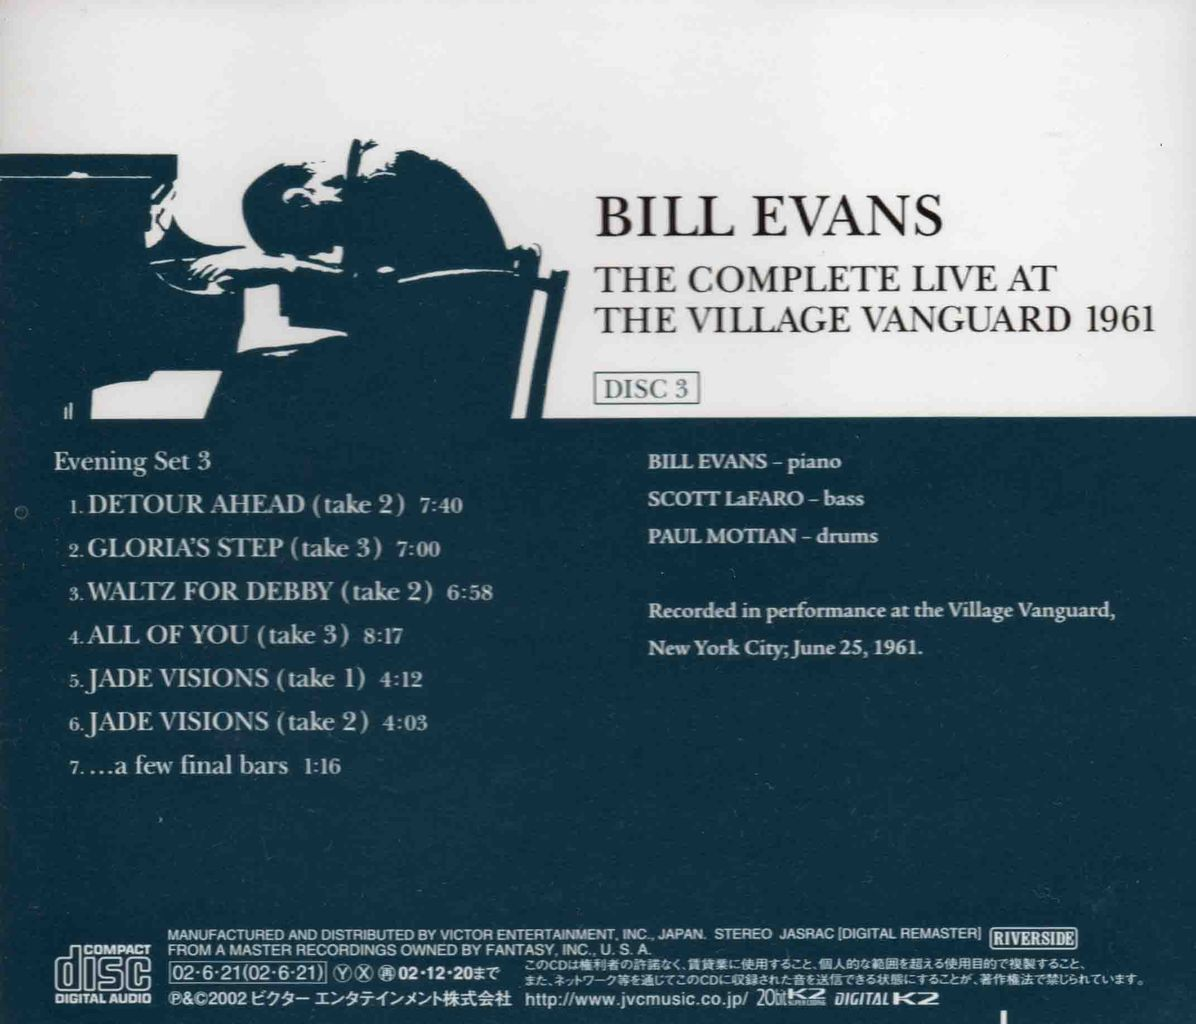 THE COMPLETE LIVE AT THE VILLAGE VANGUARD 1961-8